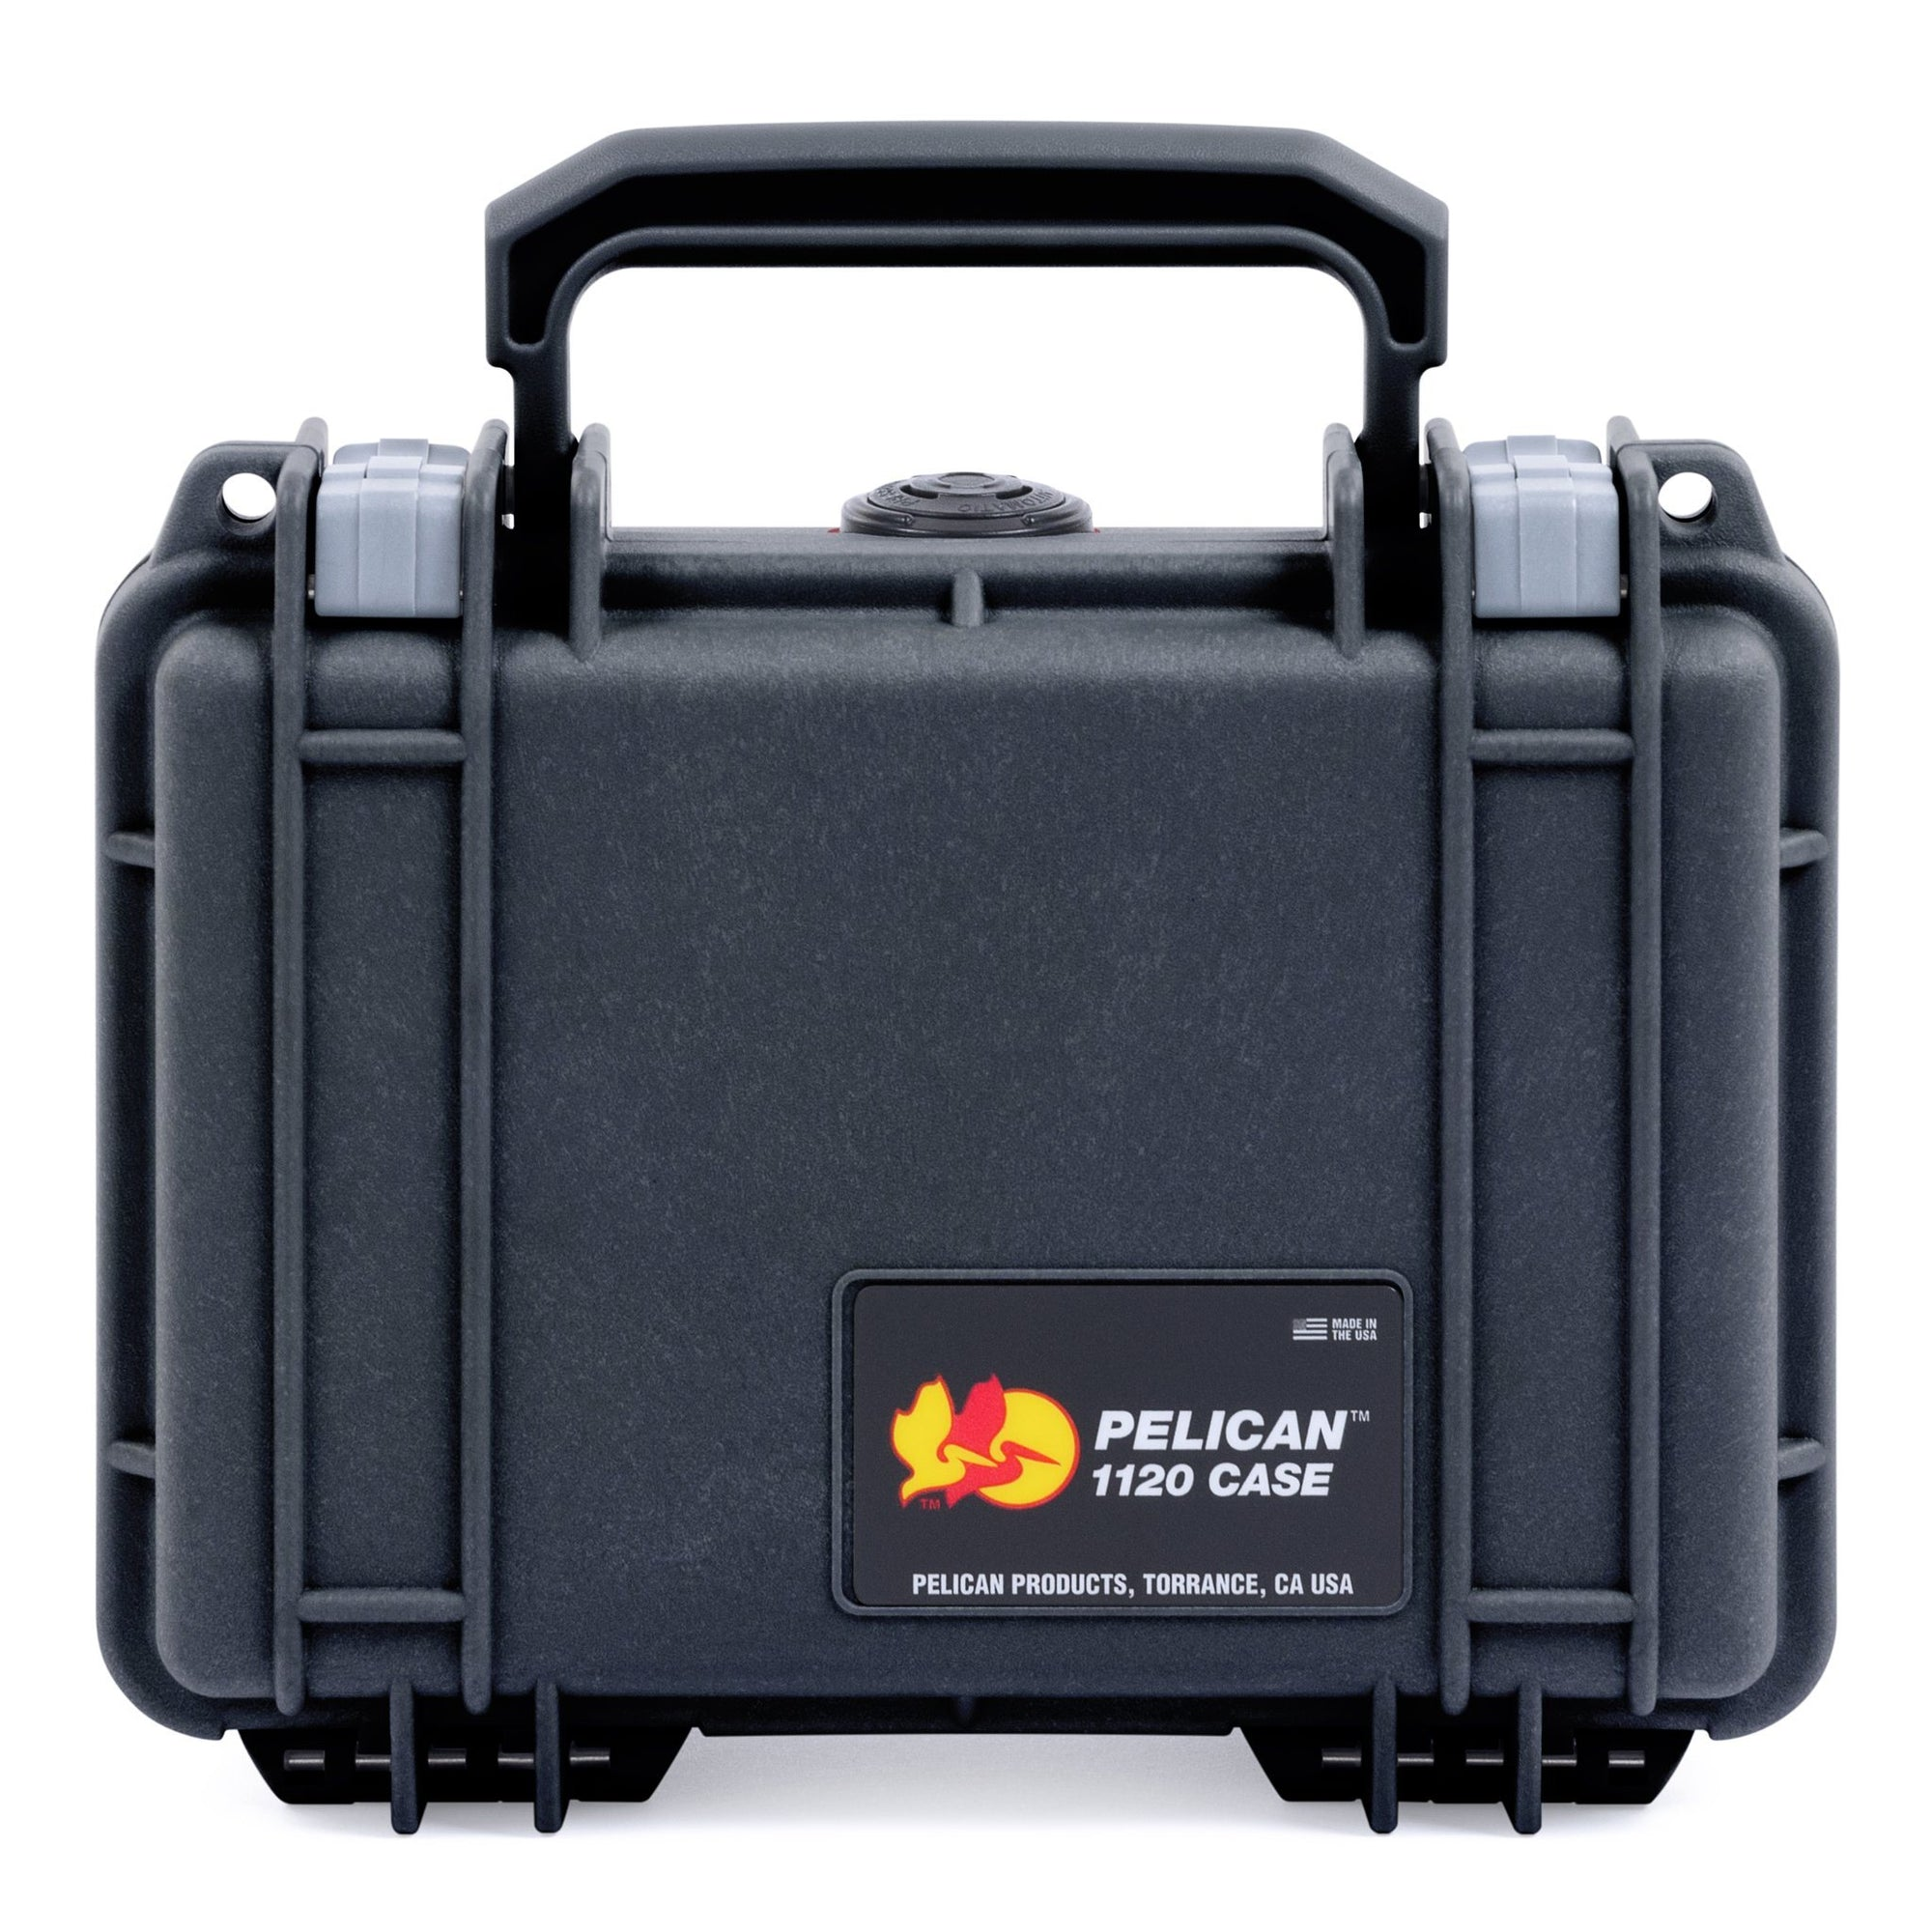 Pelican 1120 Case, Black with Silver Latches - Pelican Color Case